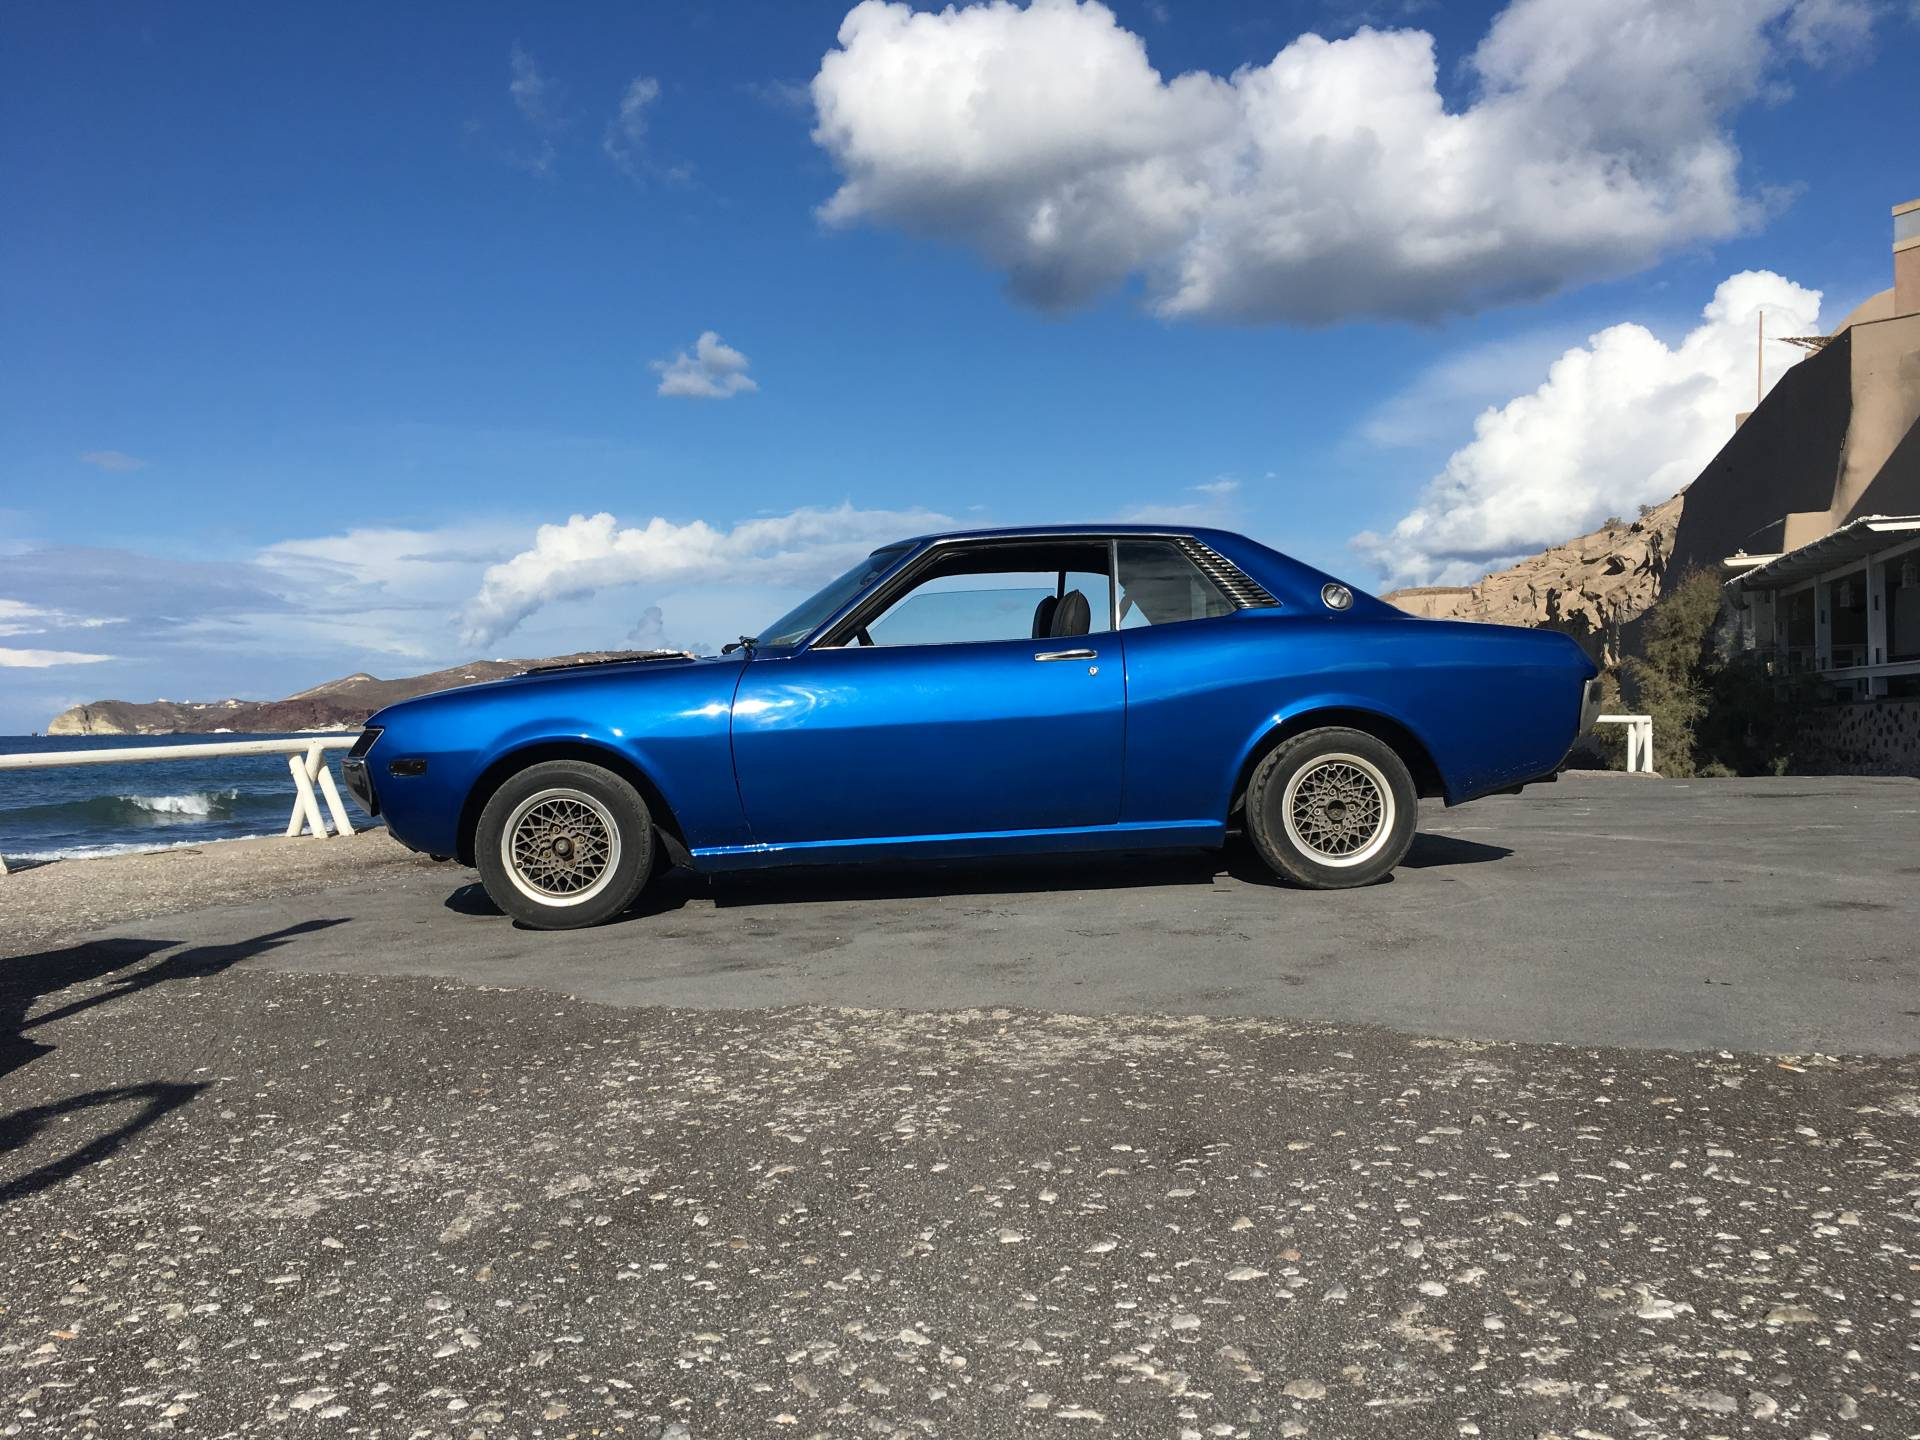 For Sale Toyota Celica Ta22 1973 Offered Gbp 13667